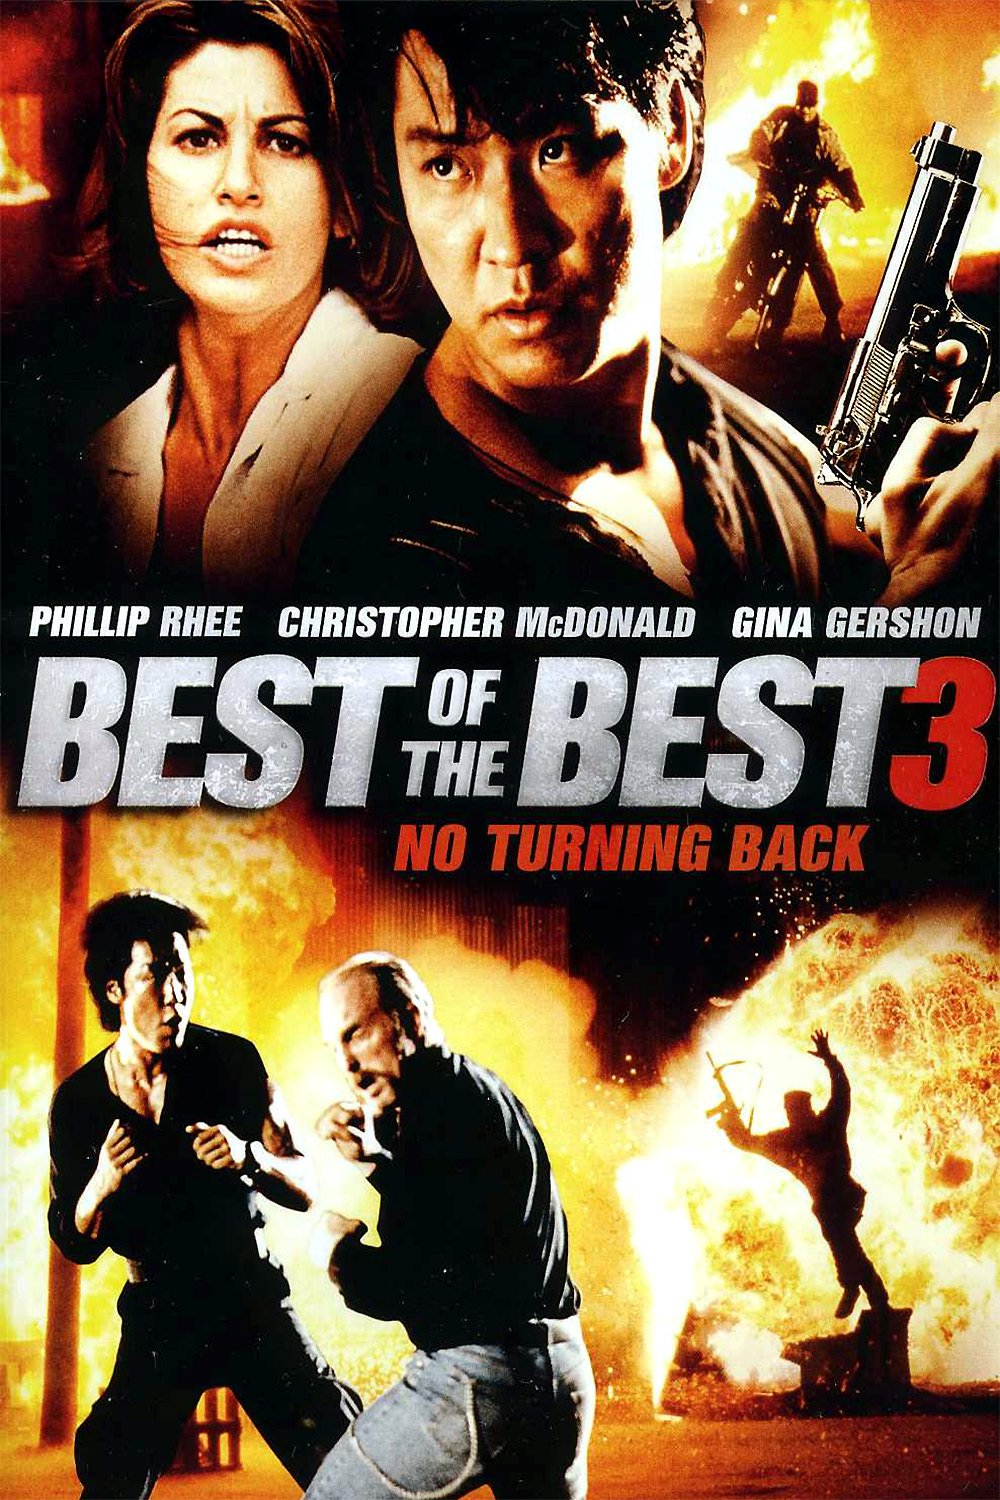 Watch Movie Best of the Best 3 No Turning Back